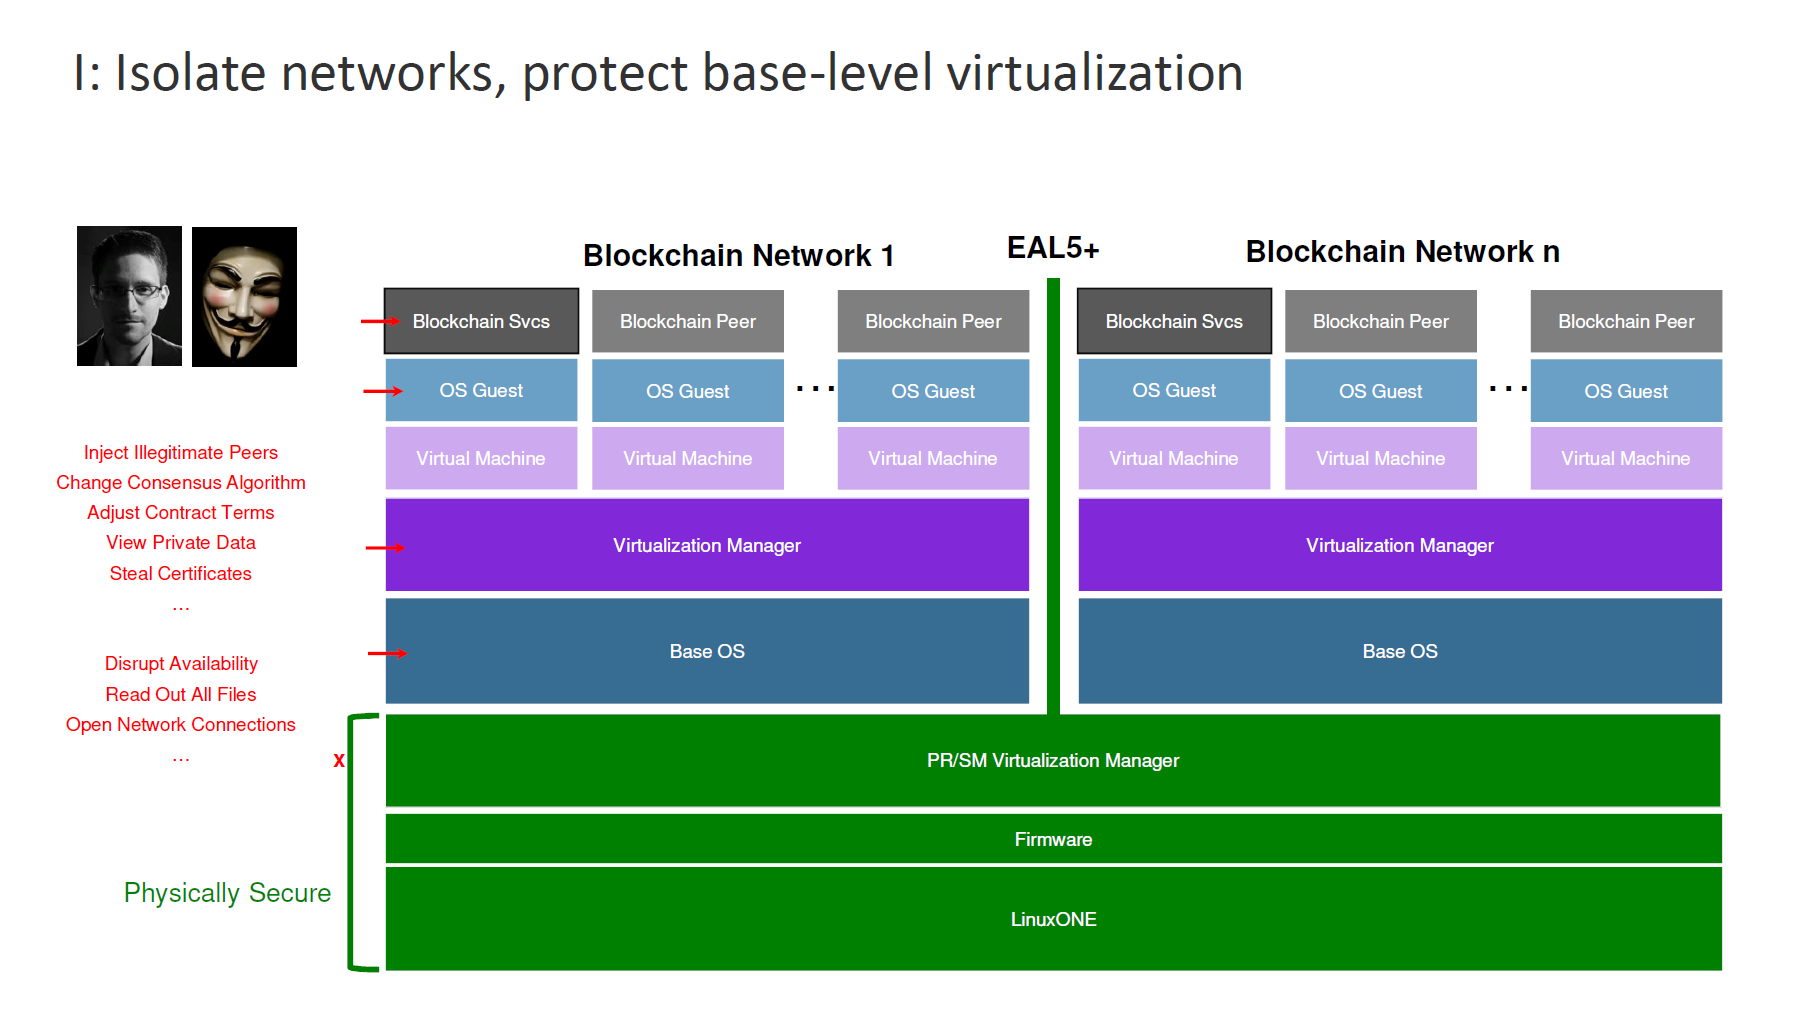 IBM Blockchain Hyperledger Fabric InterConnect Security Architecture 2